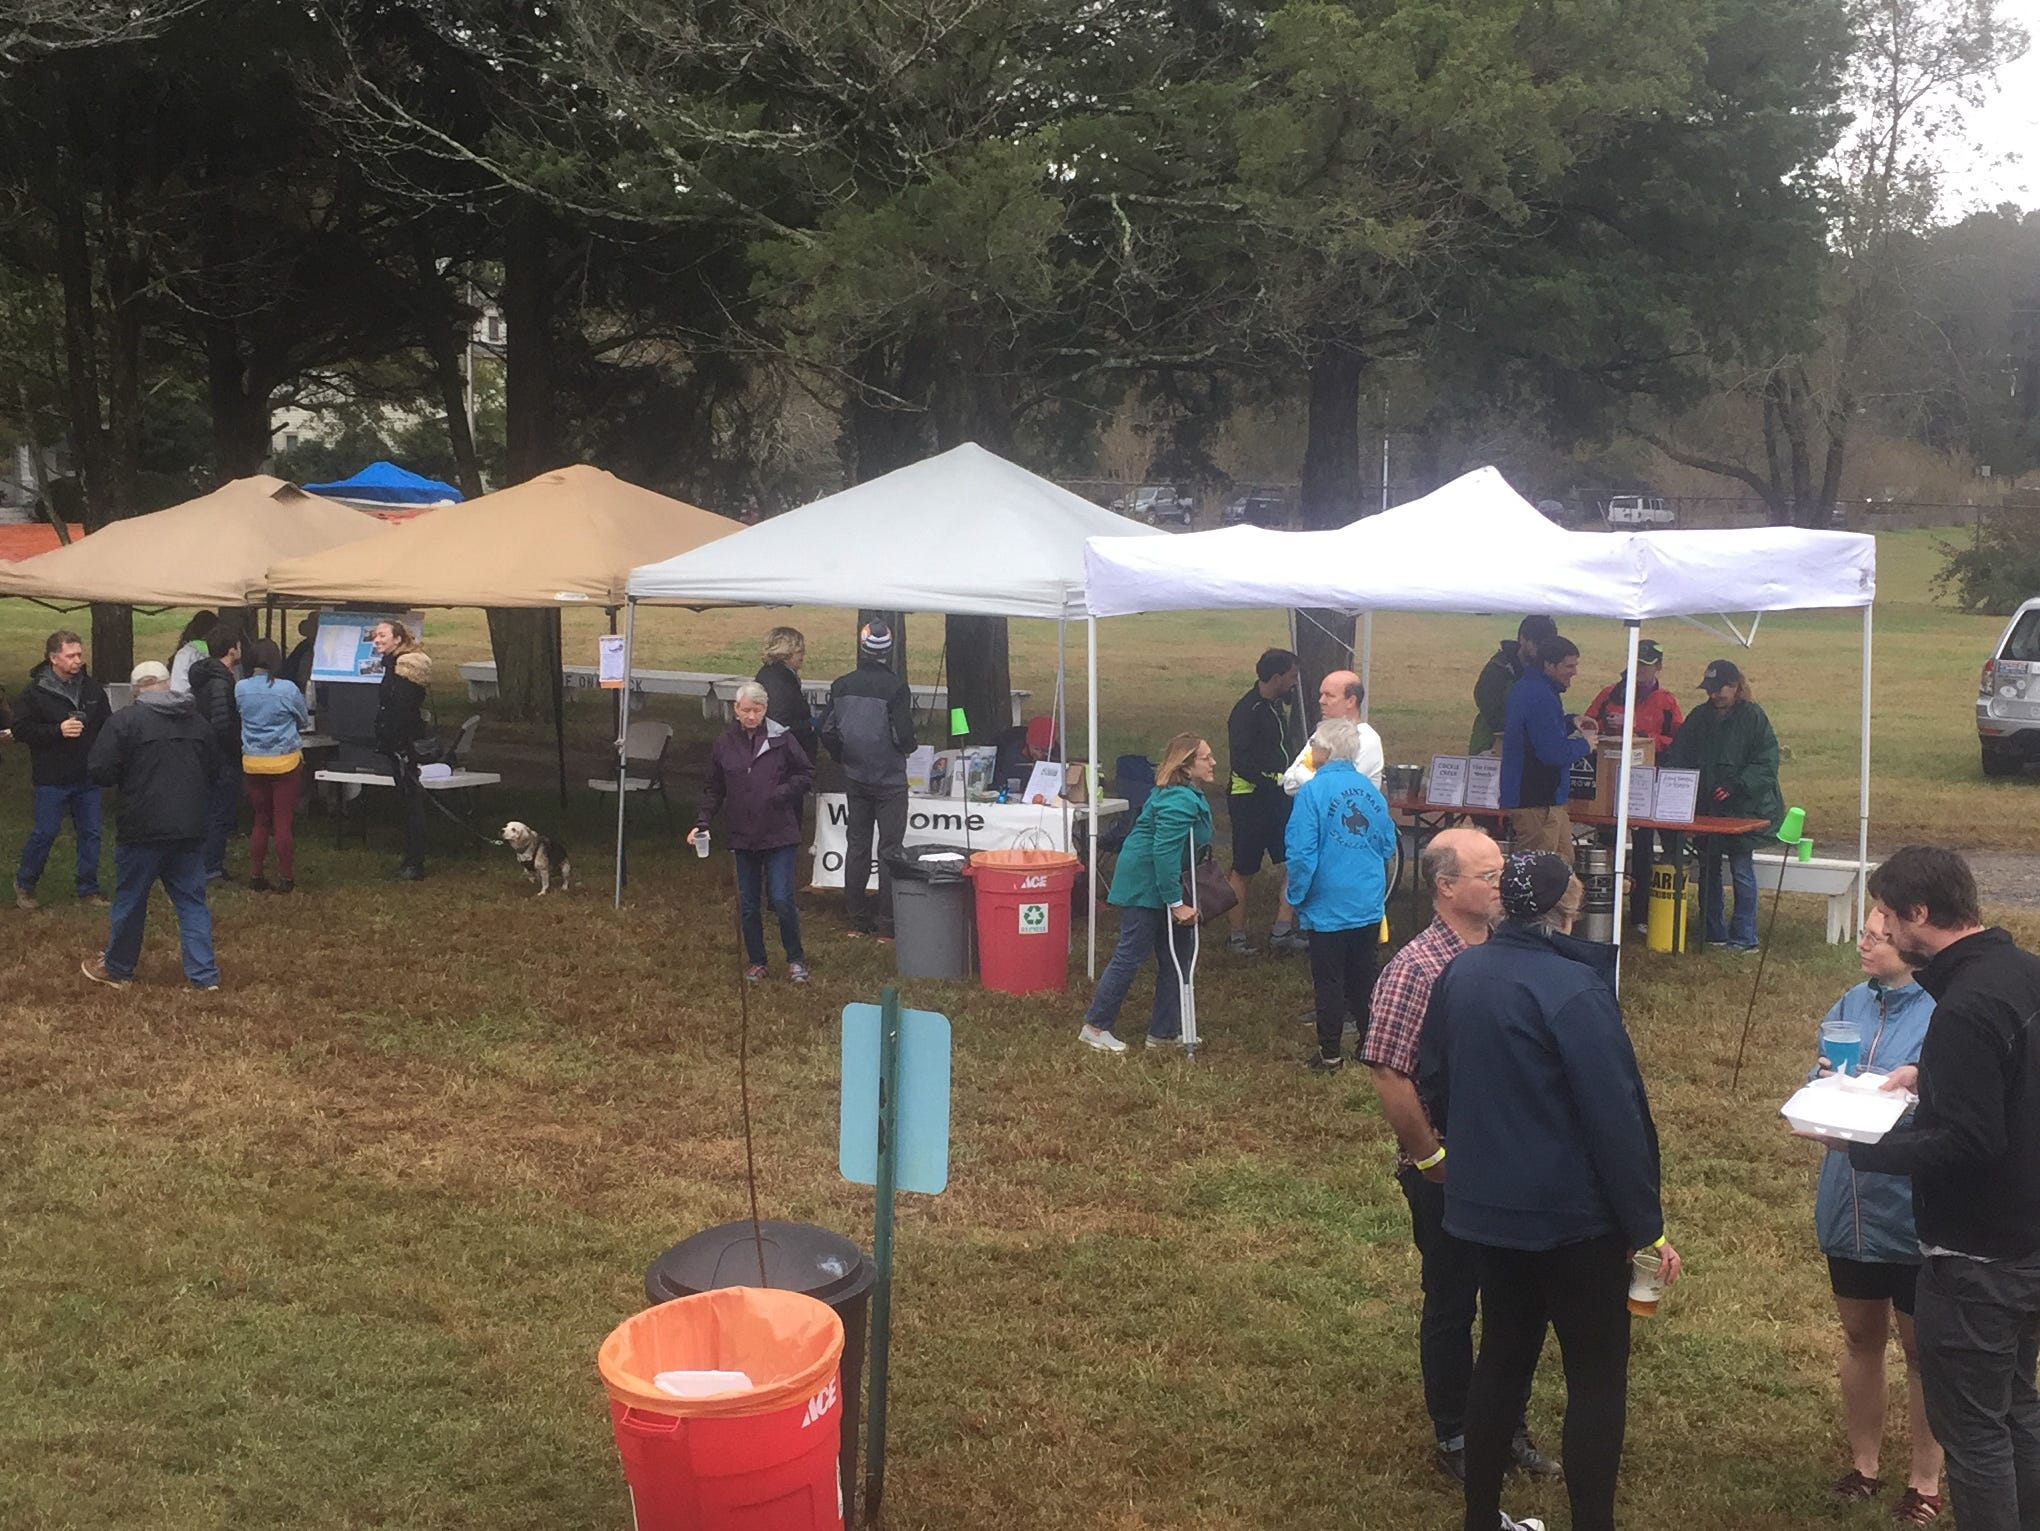 Bicyclists and others mingle at the Bike & Brew event at the Historic Onancock School on Saturday, Oct. 27, 2018. The event, held following the CBES Bike Ride, highlighted the Eastern Shore of Virginia's two breweries, Black Narrows Brewing Co. and Cape Charles Brewing Co.